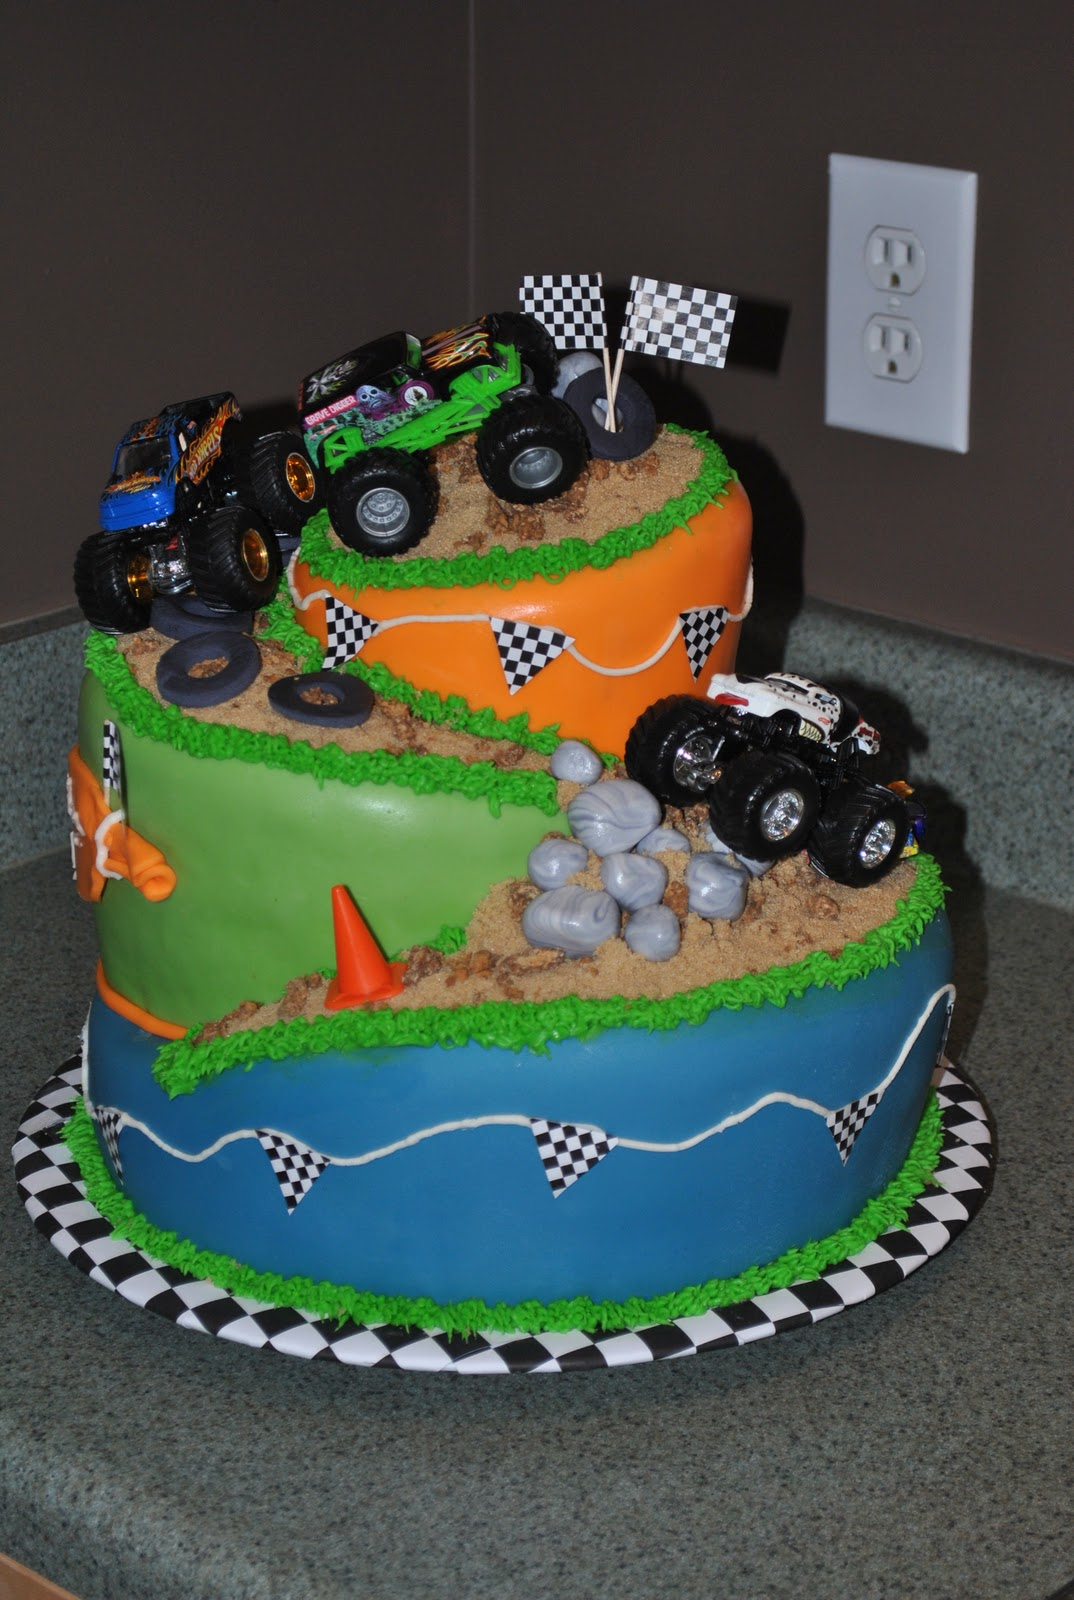 Hope S Sweet Cakes Cakes Cakes And More Cakes